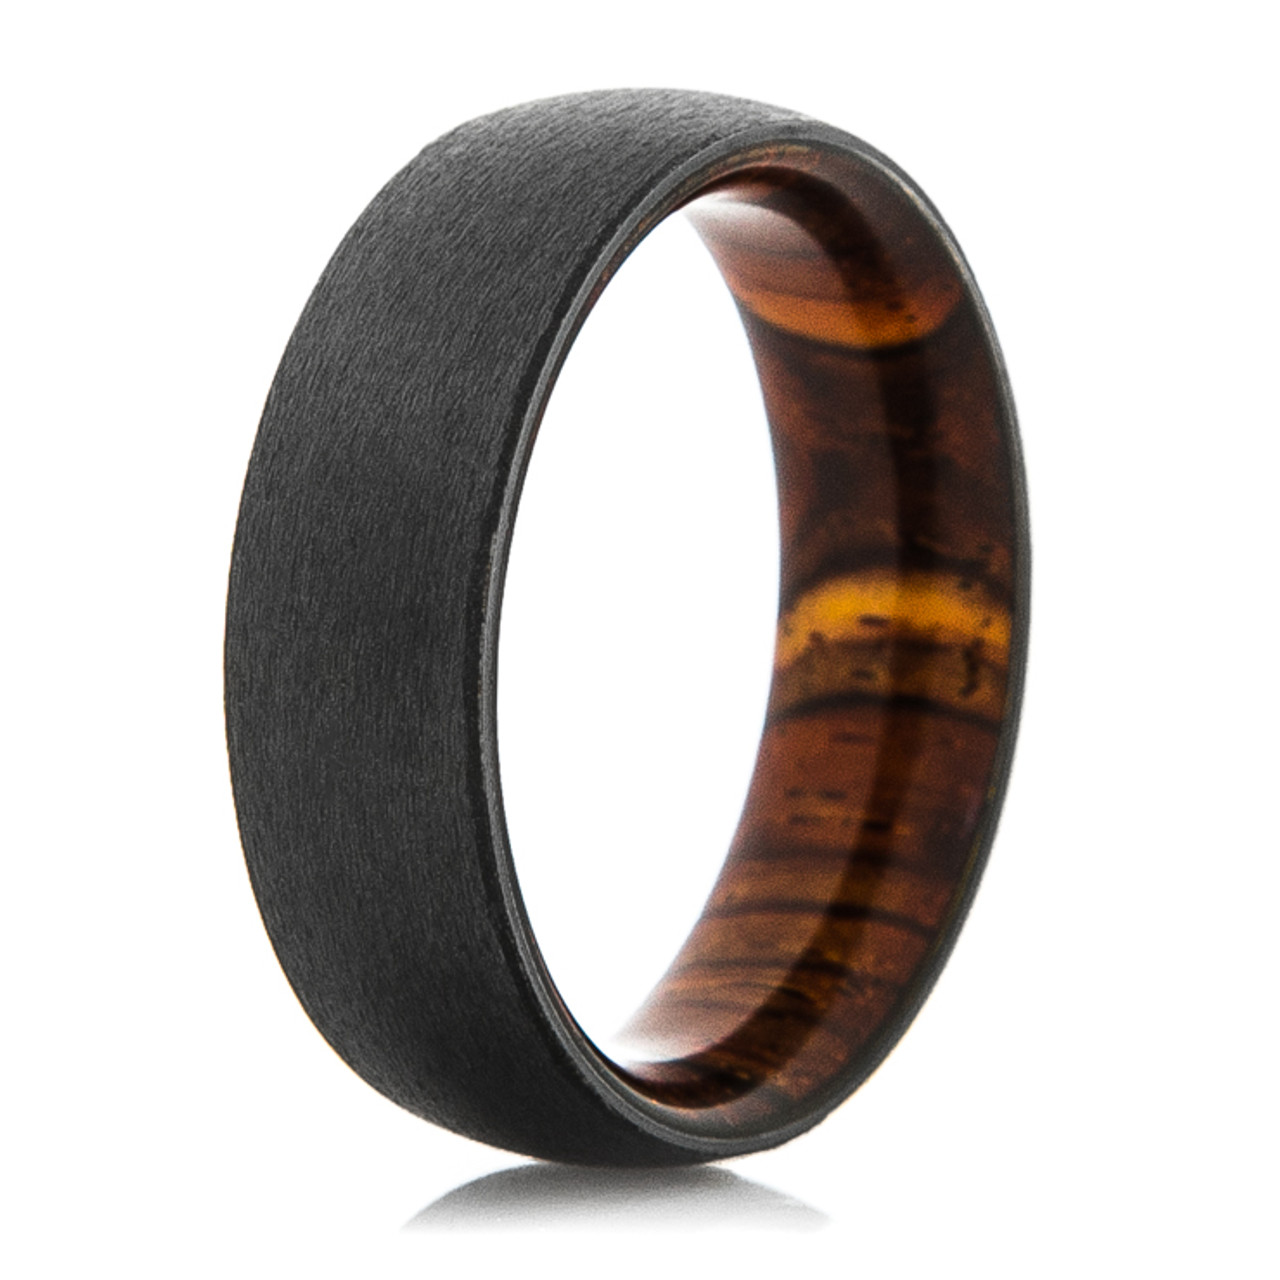 Wood Mens Wedding Bands Canada: Men's Black Zirconium Ring With Cocobolo Wood Sleeve